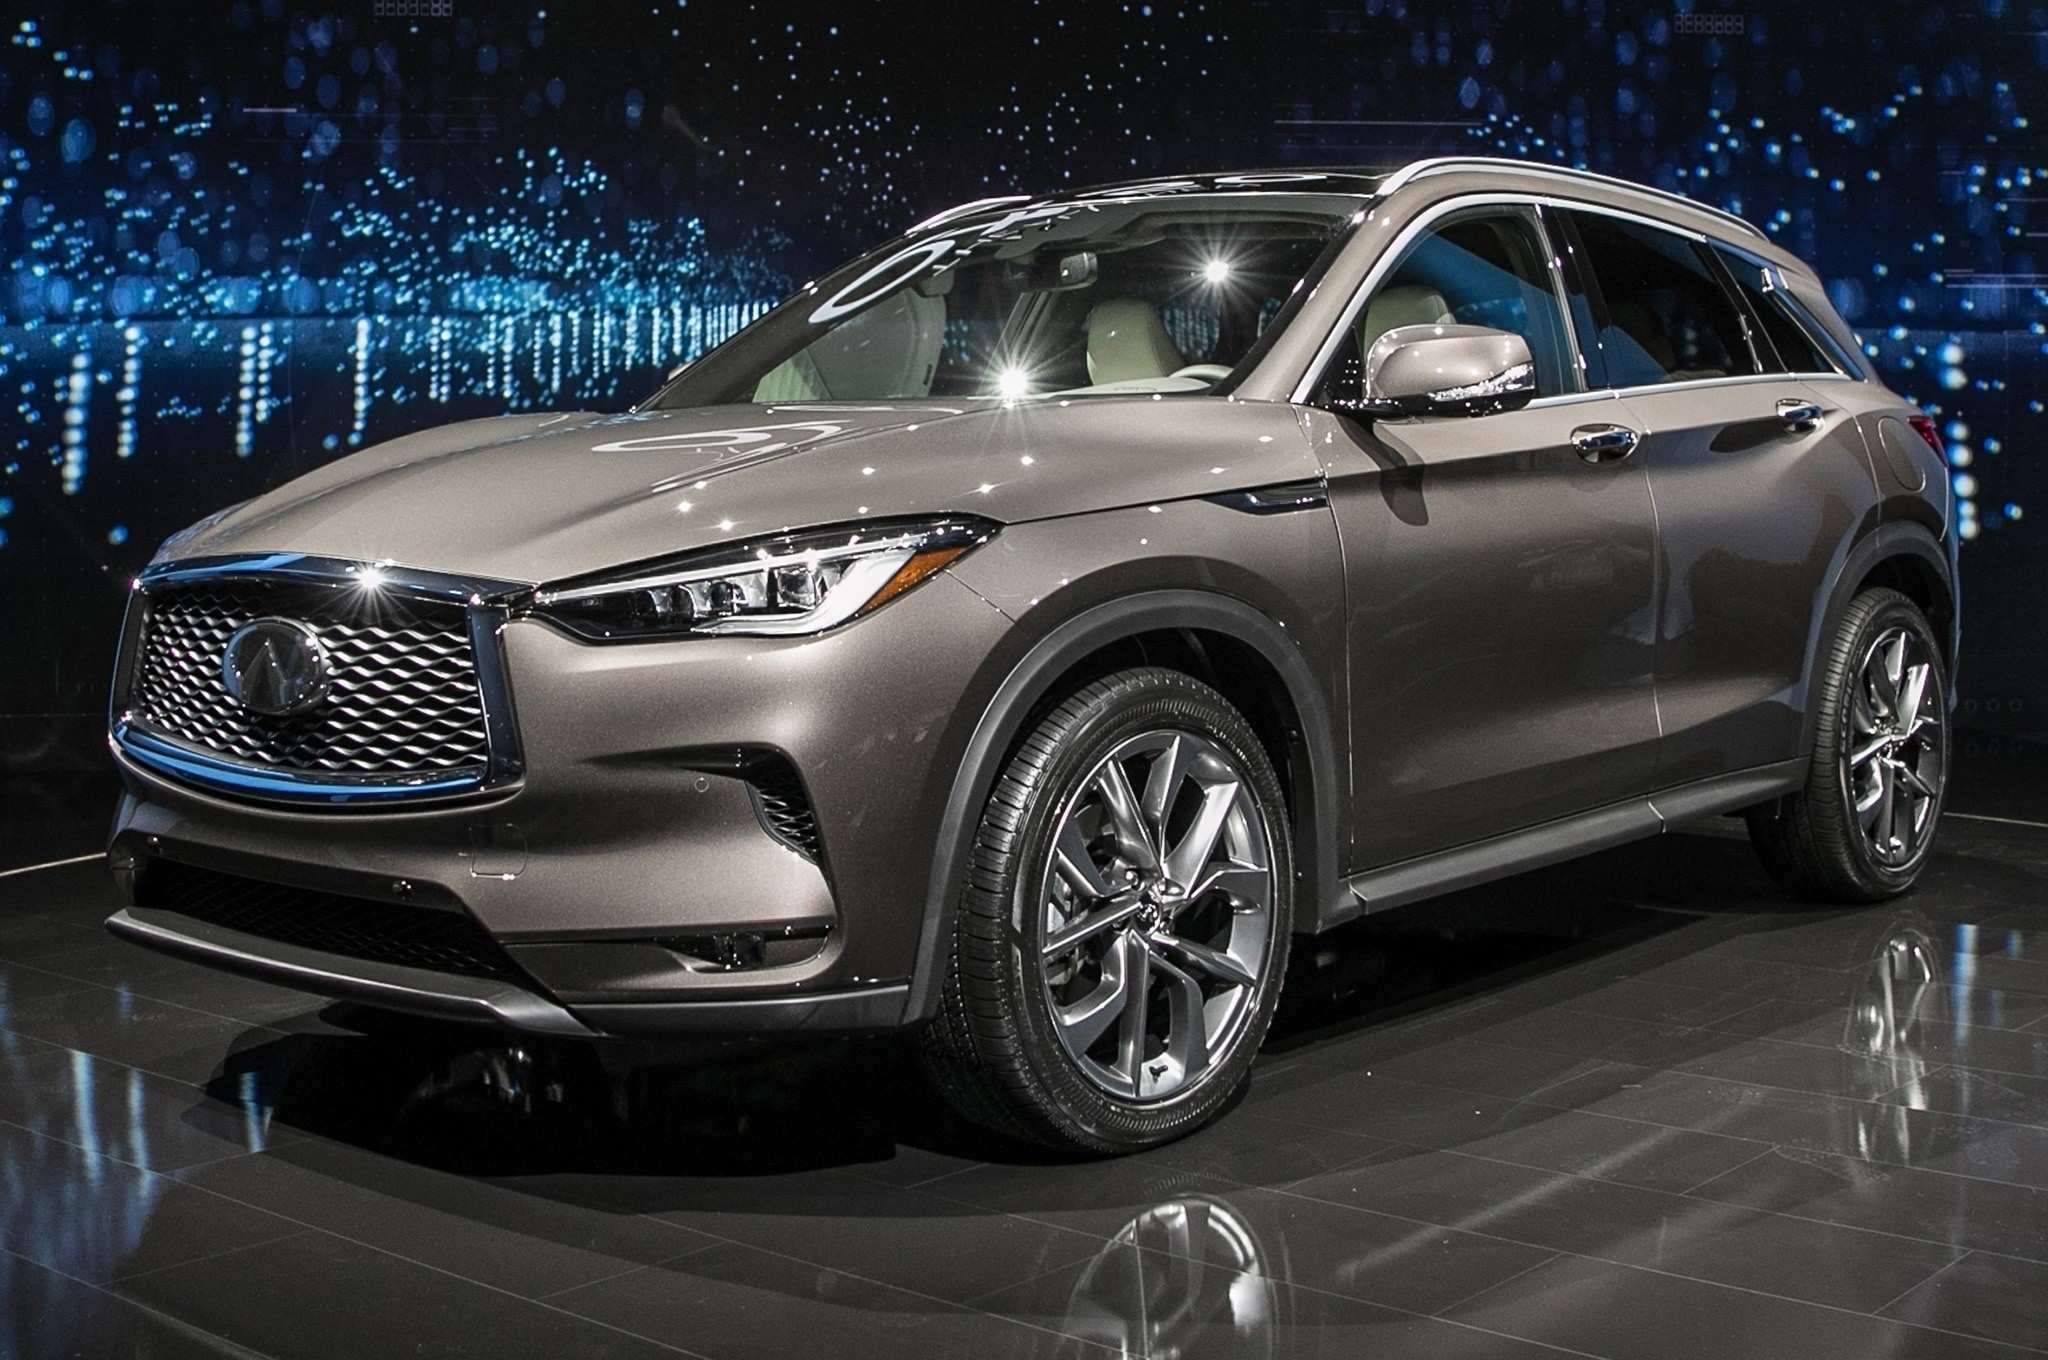 24 New 2019 Infiniti Release Date Photos for 2019 Infiniti Release Date